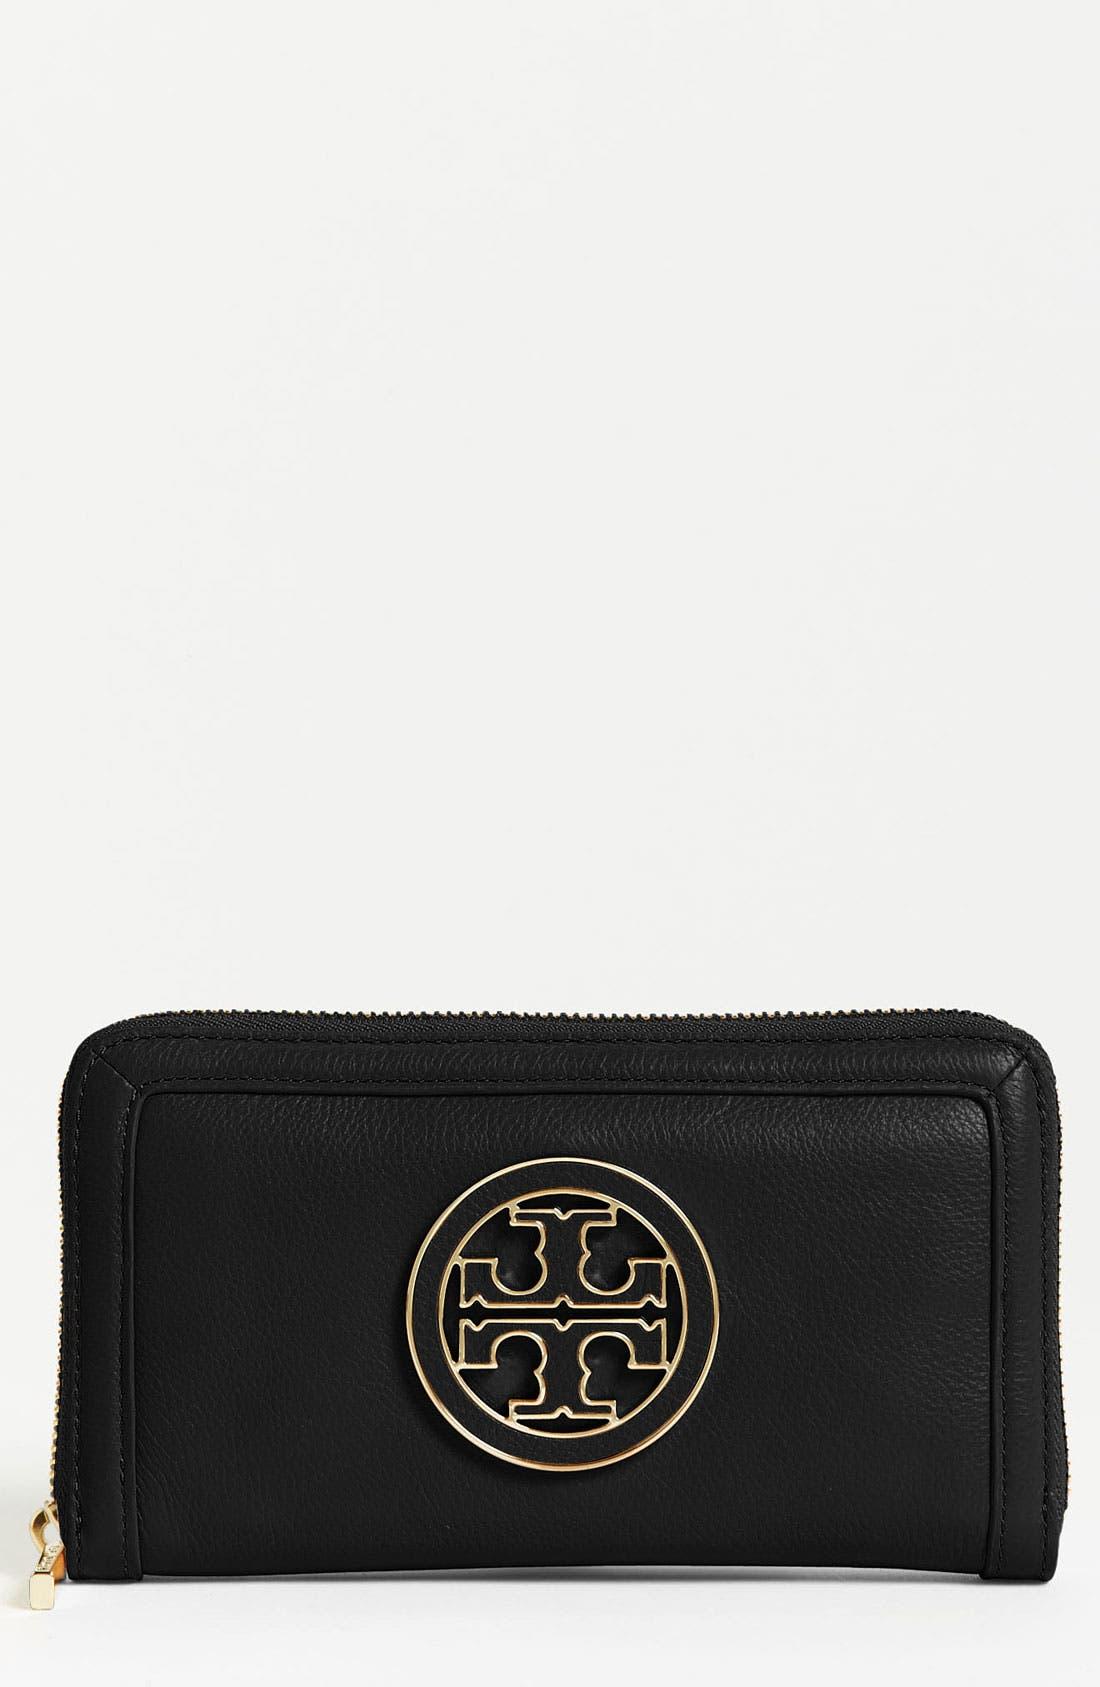 Main Image - Tory Burch 'Amanda' Continental Wallet